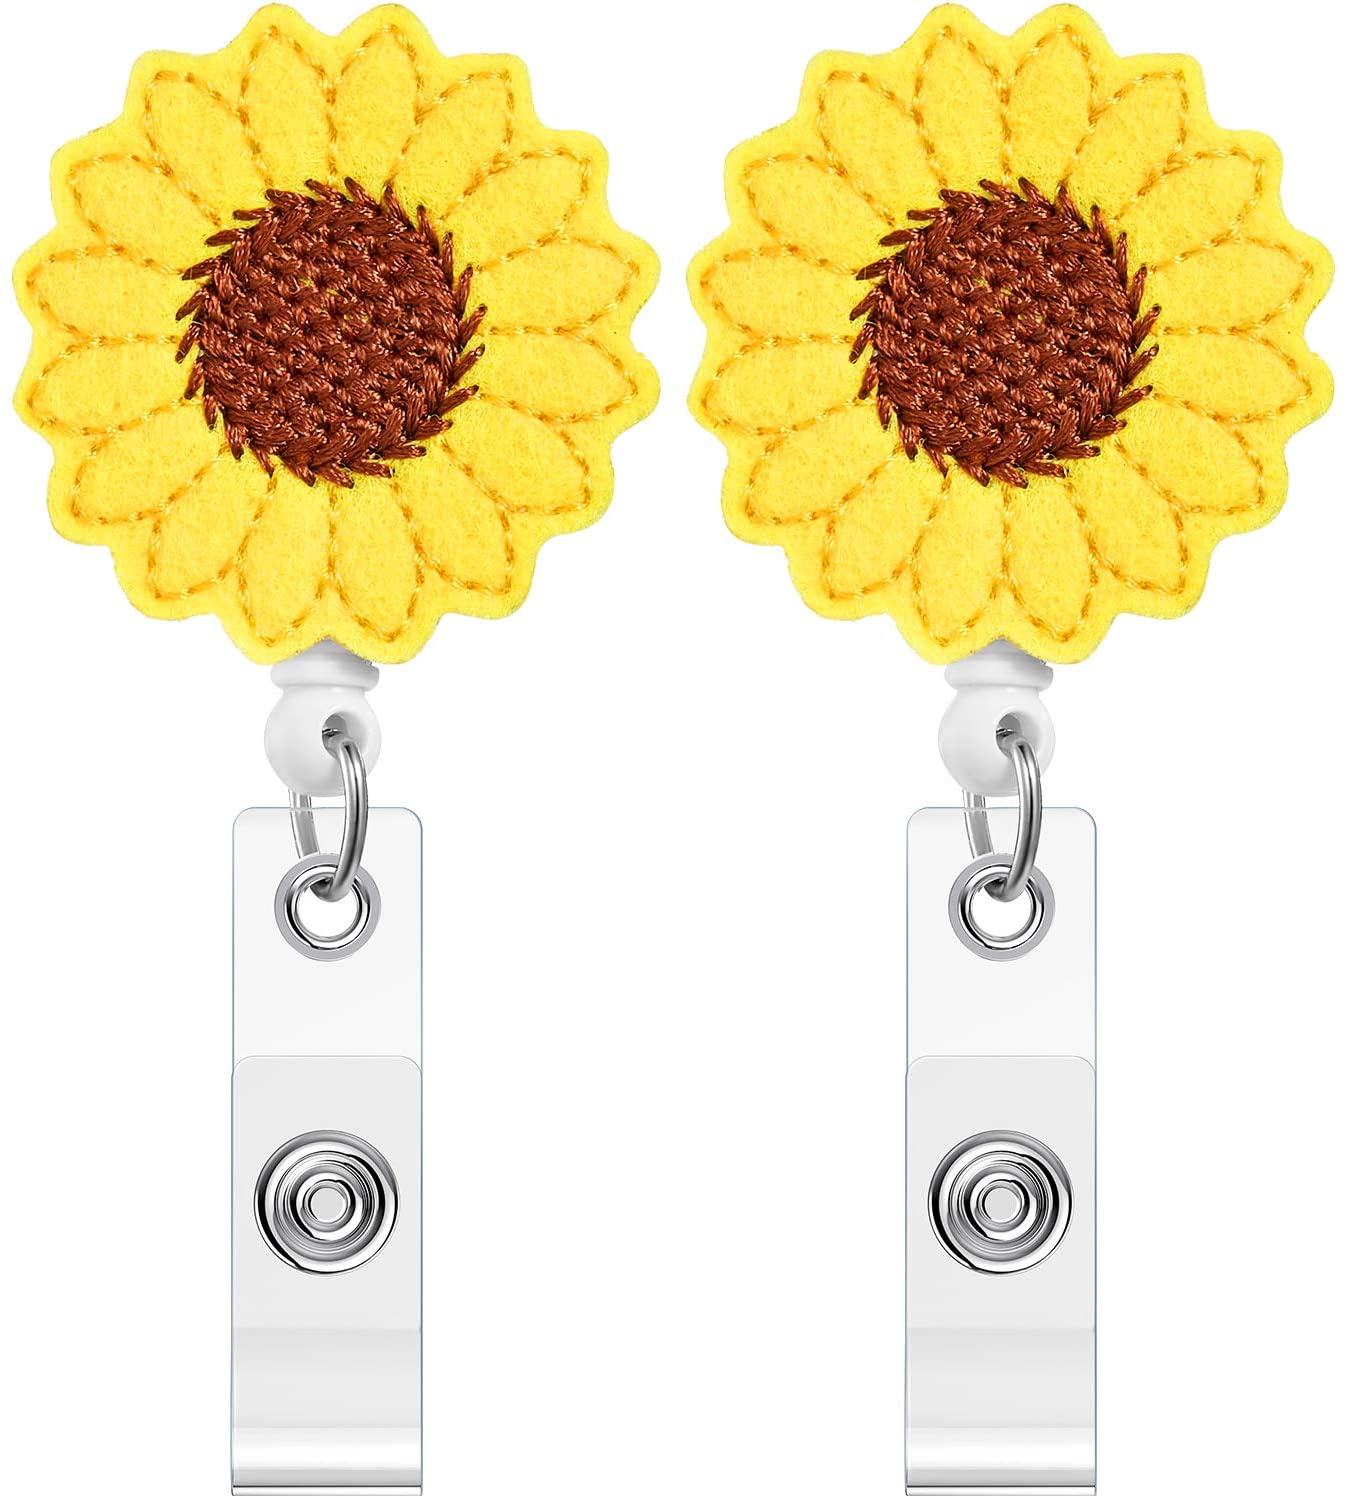 2 Packs Sunflower Badge Reel Holder 24 inch Retractable Cord ID Badge Reel with Alligator Clip for Women Gift